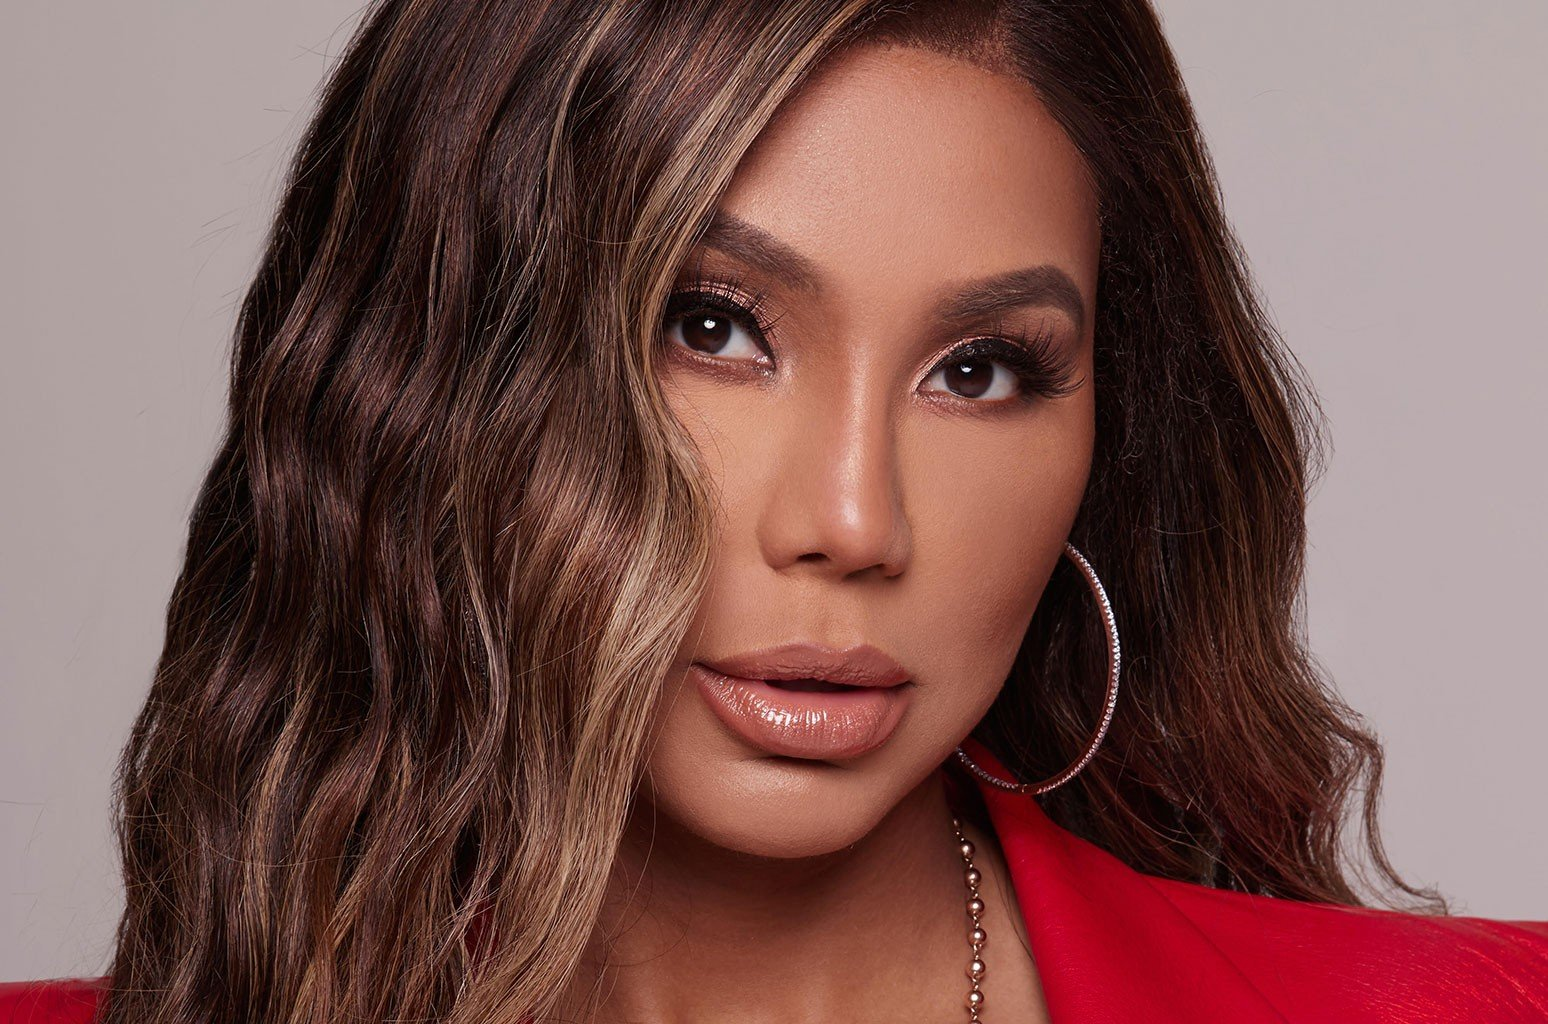 Tamar Braxton Opens Up About The Heartbreak She Endured Last Year